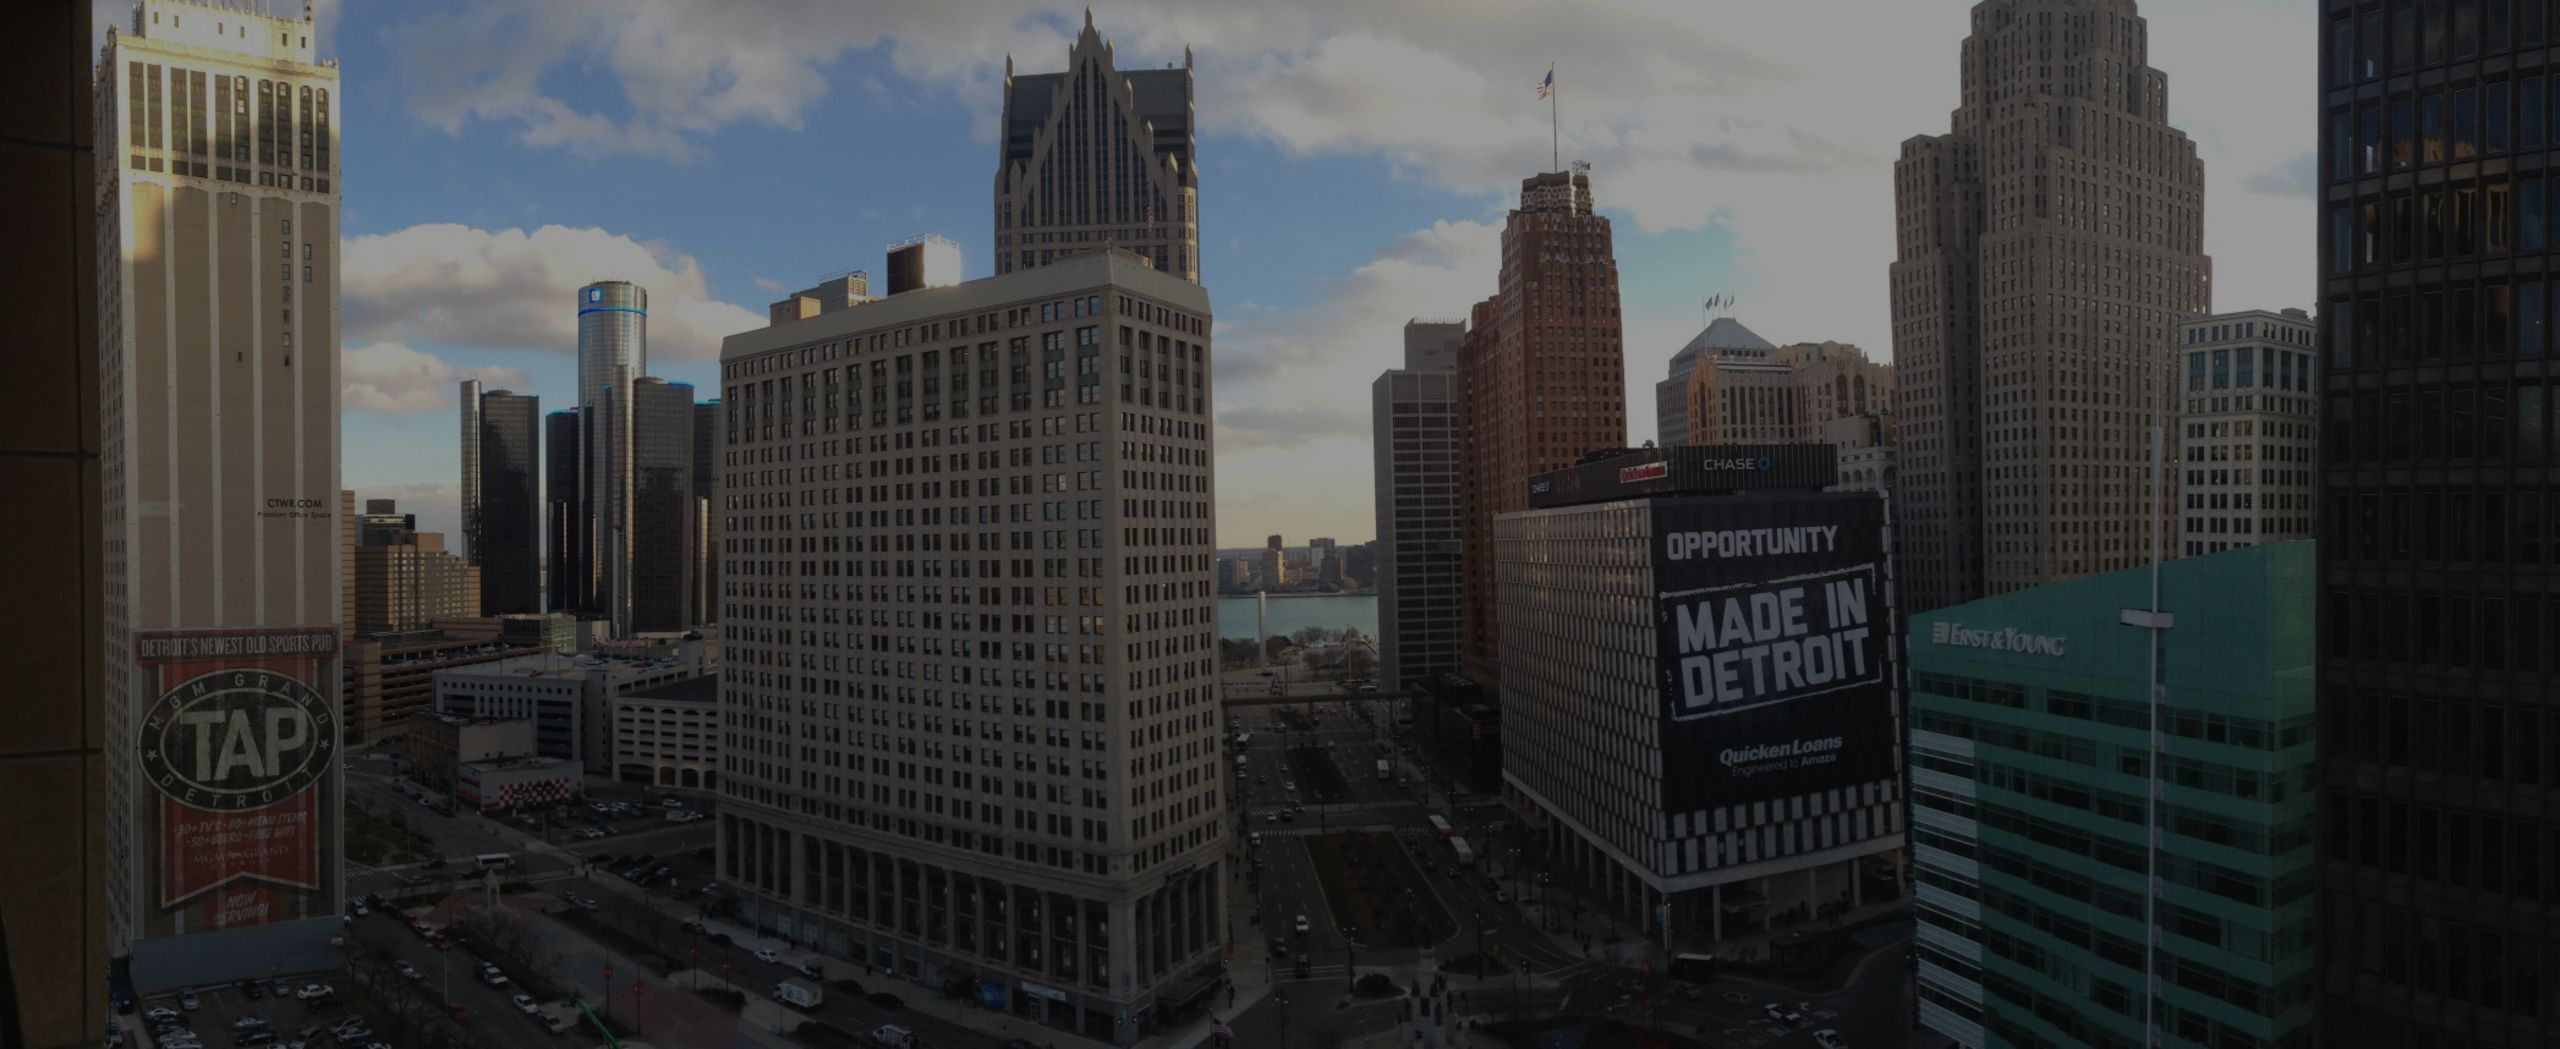 Urban Land Institute taps Detroit to host 3-day event The nonprofit's Spring Meeting to bring 3,000-plus real estate professionals to the city